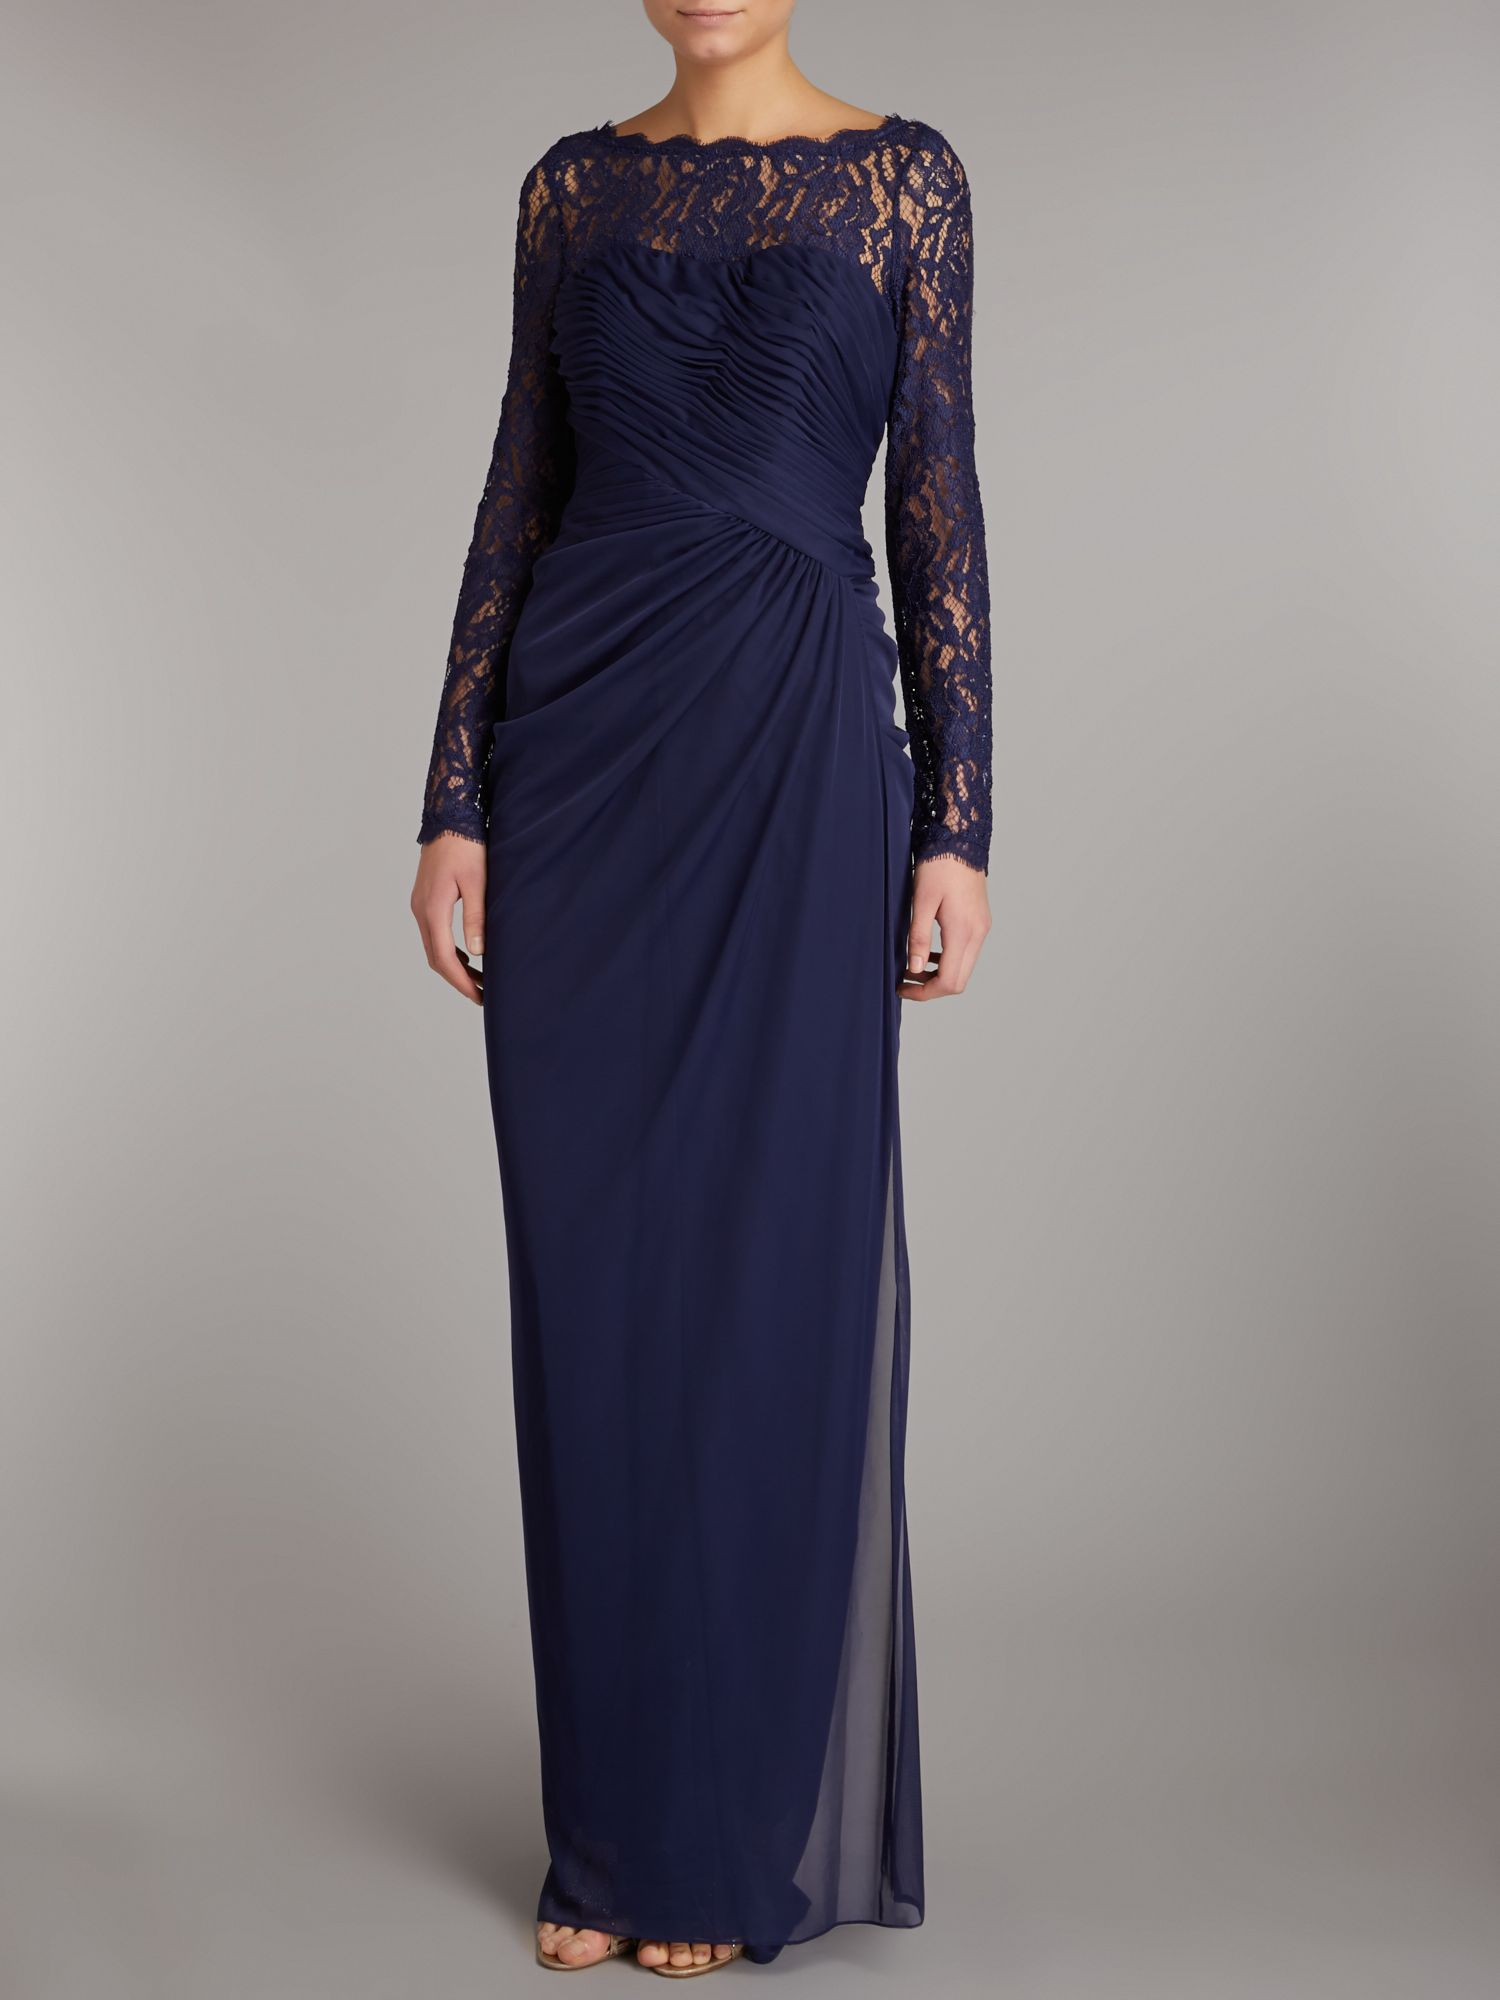 Draped Gown with Illusion Lace